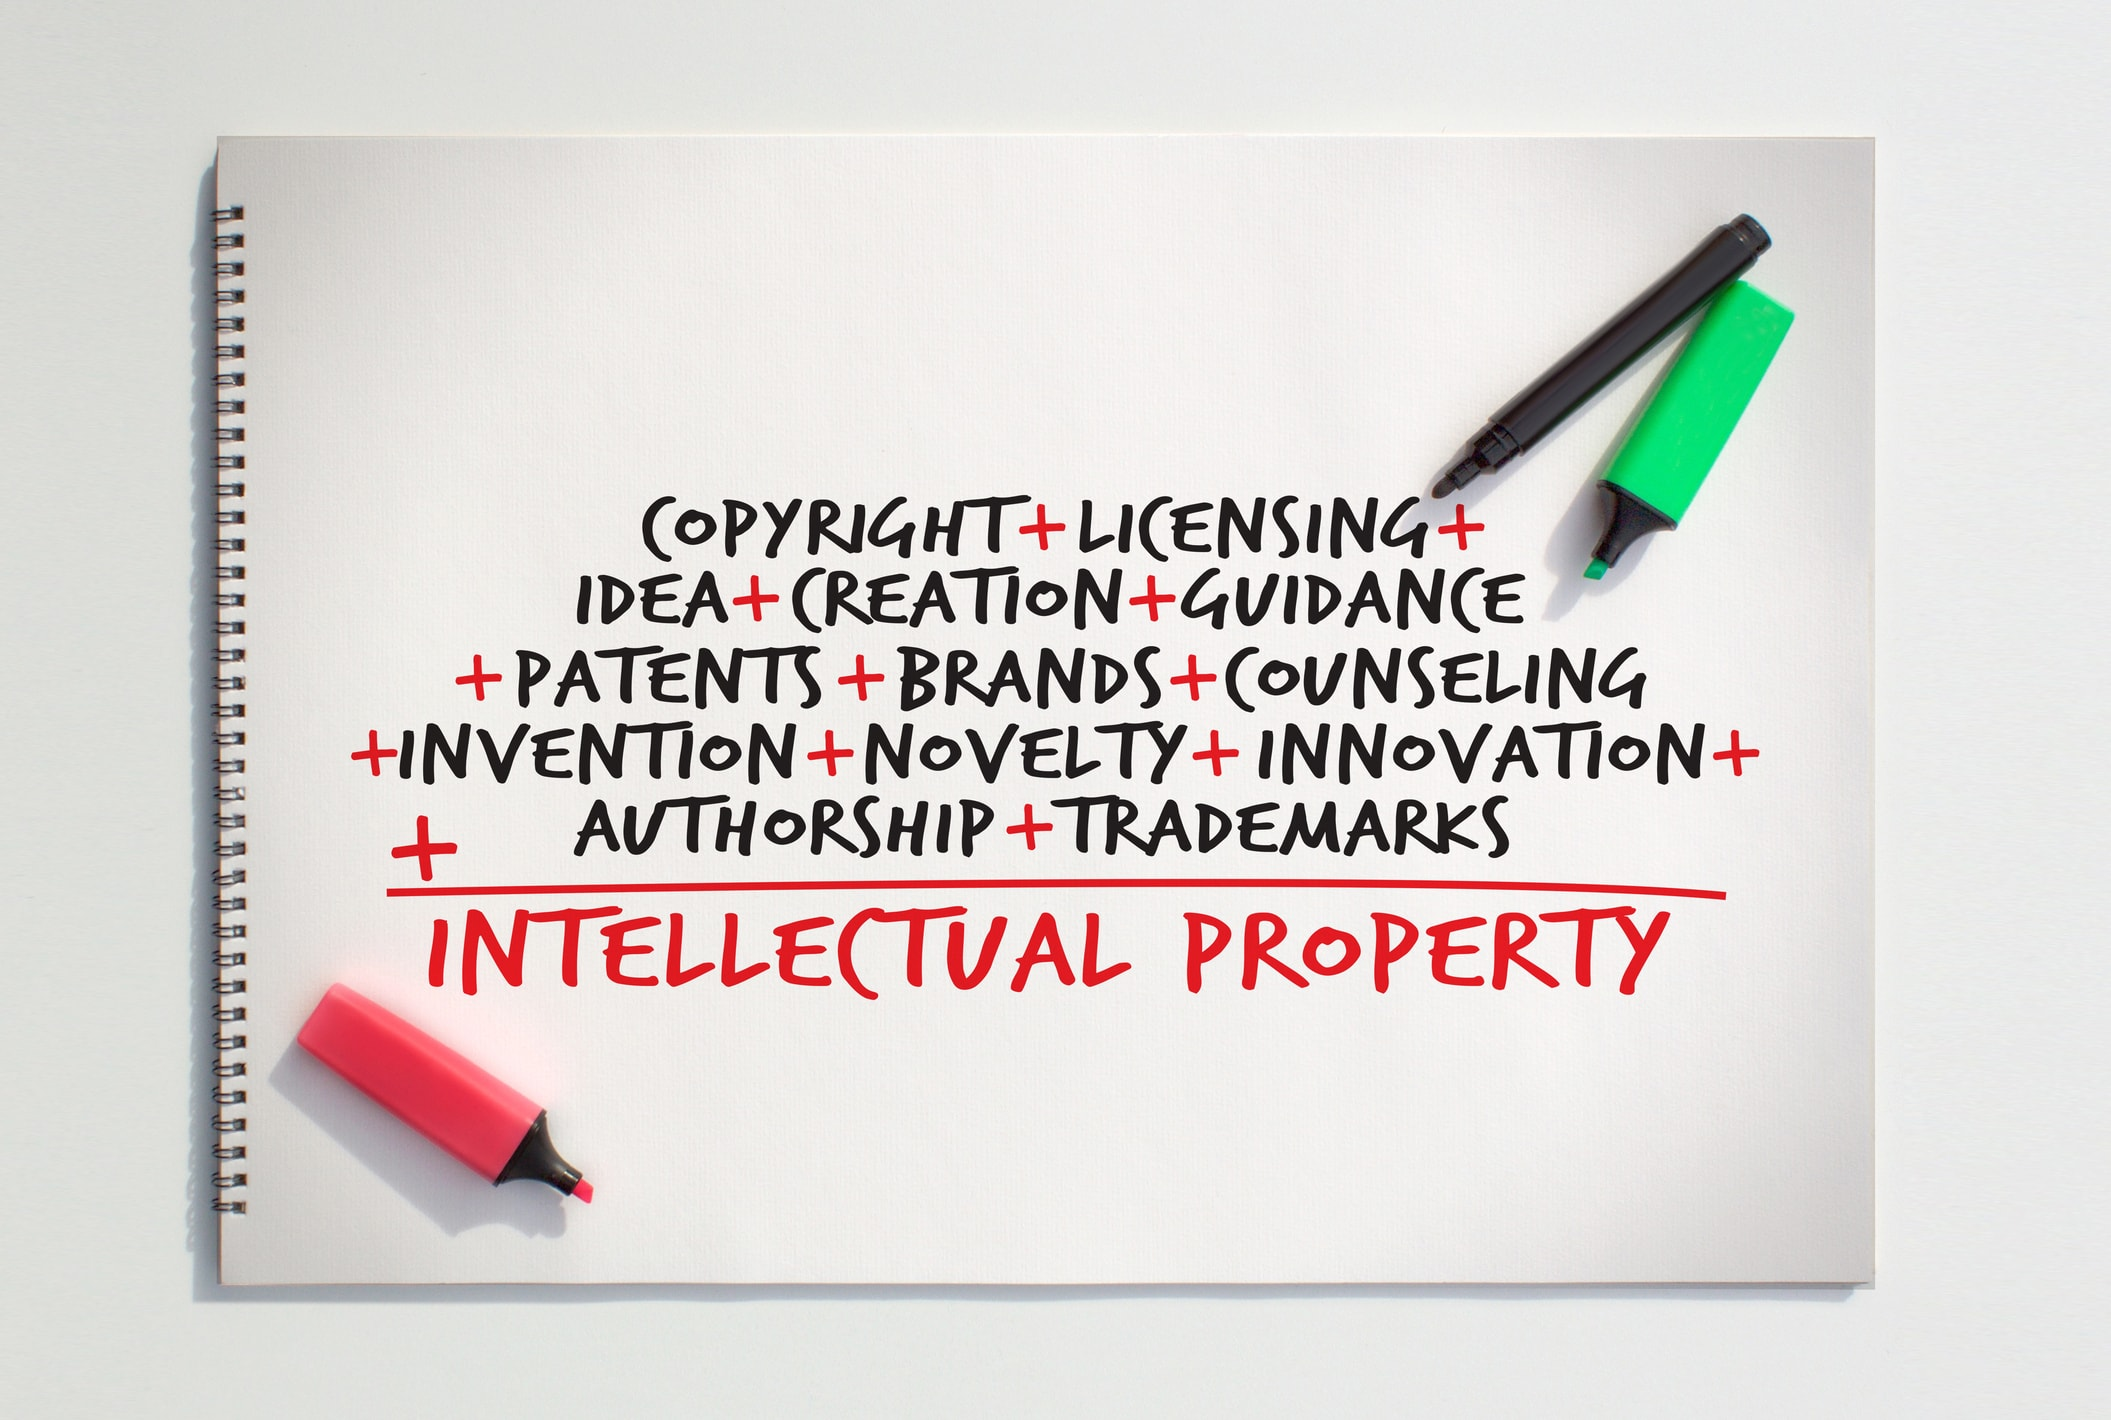 Residency Intellectual Property